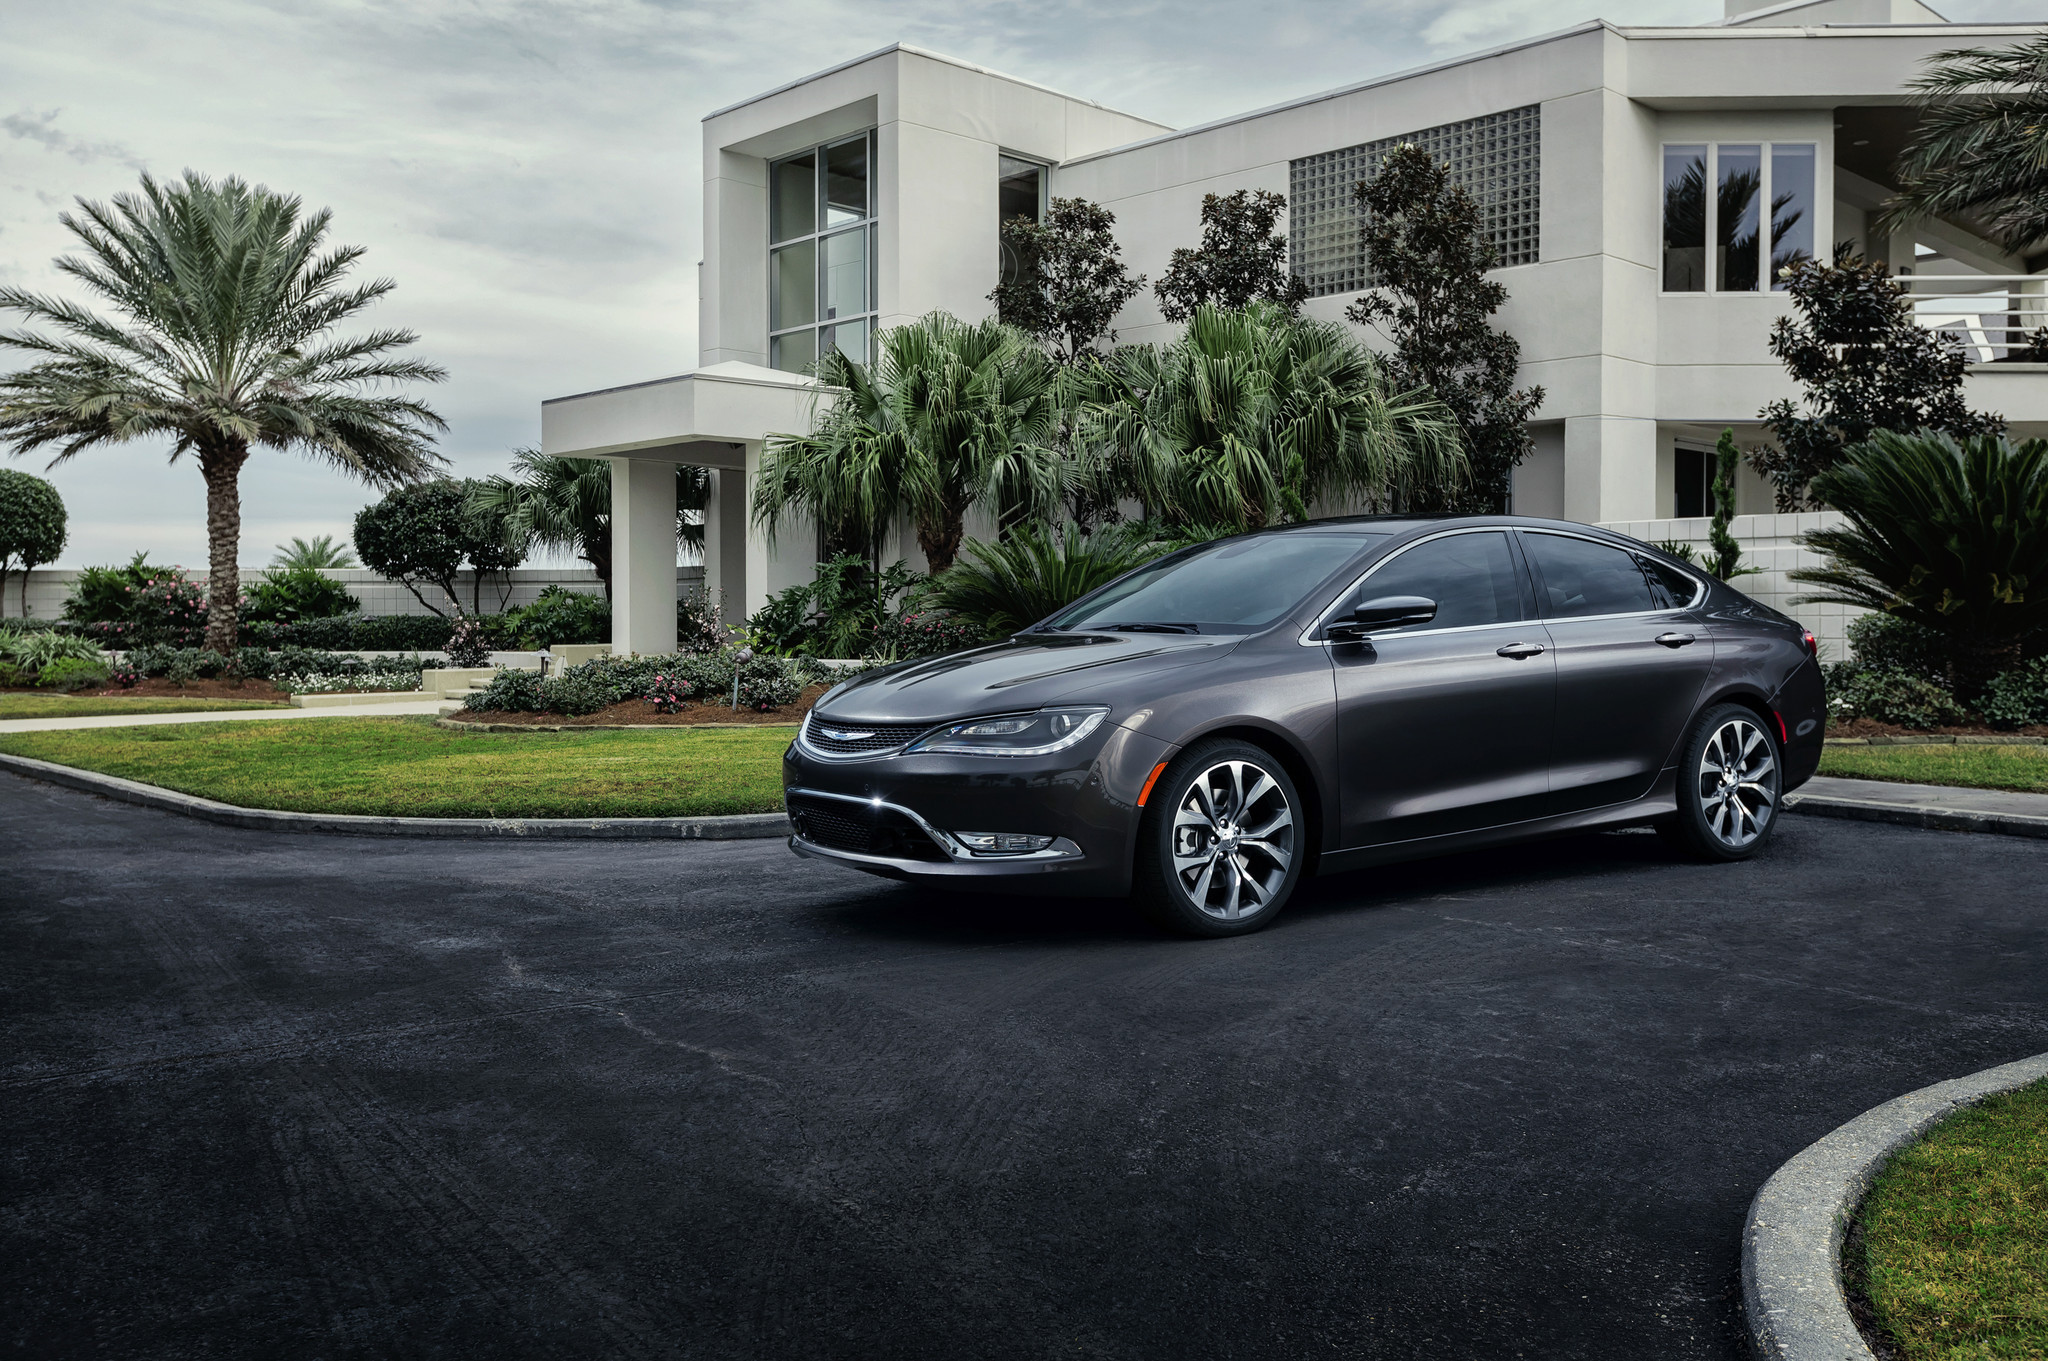 2015 Chrysler 200C (Photo 1 of 11)